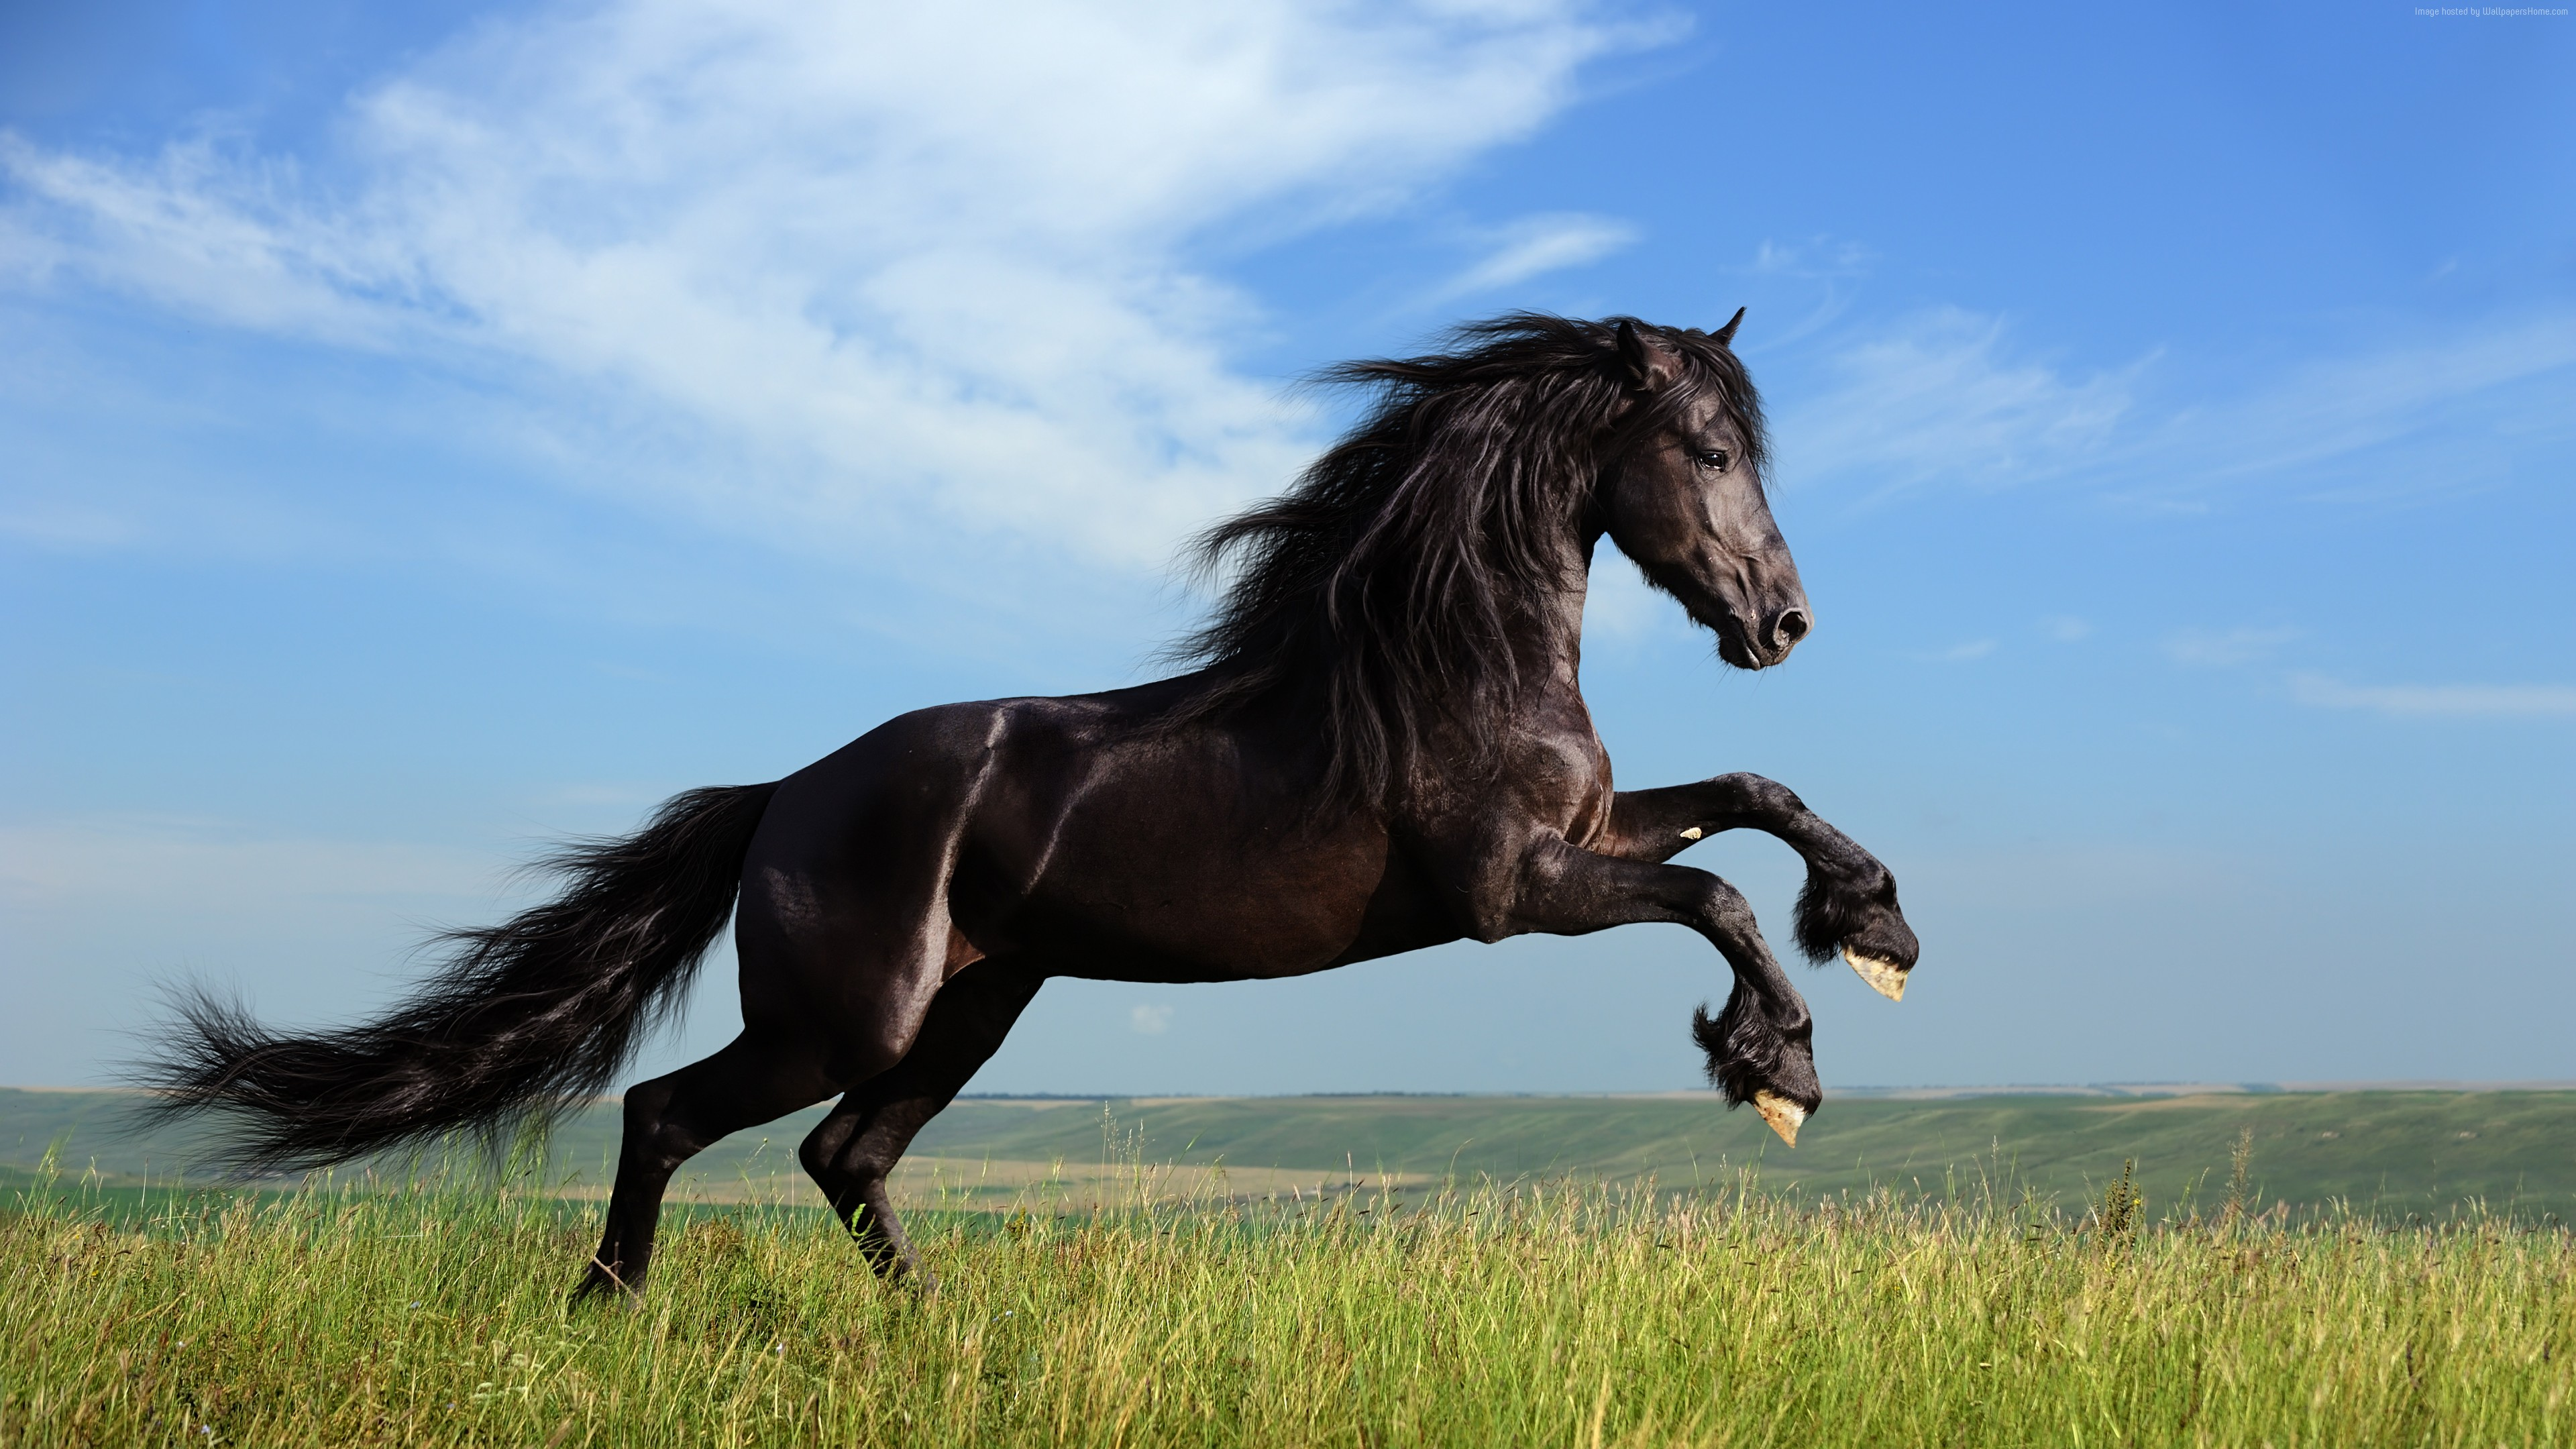 Wallpaper Horse, gallop, meadow, sky, Animals